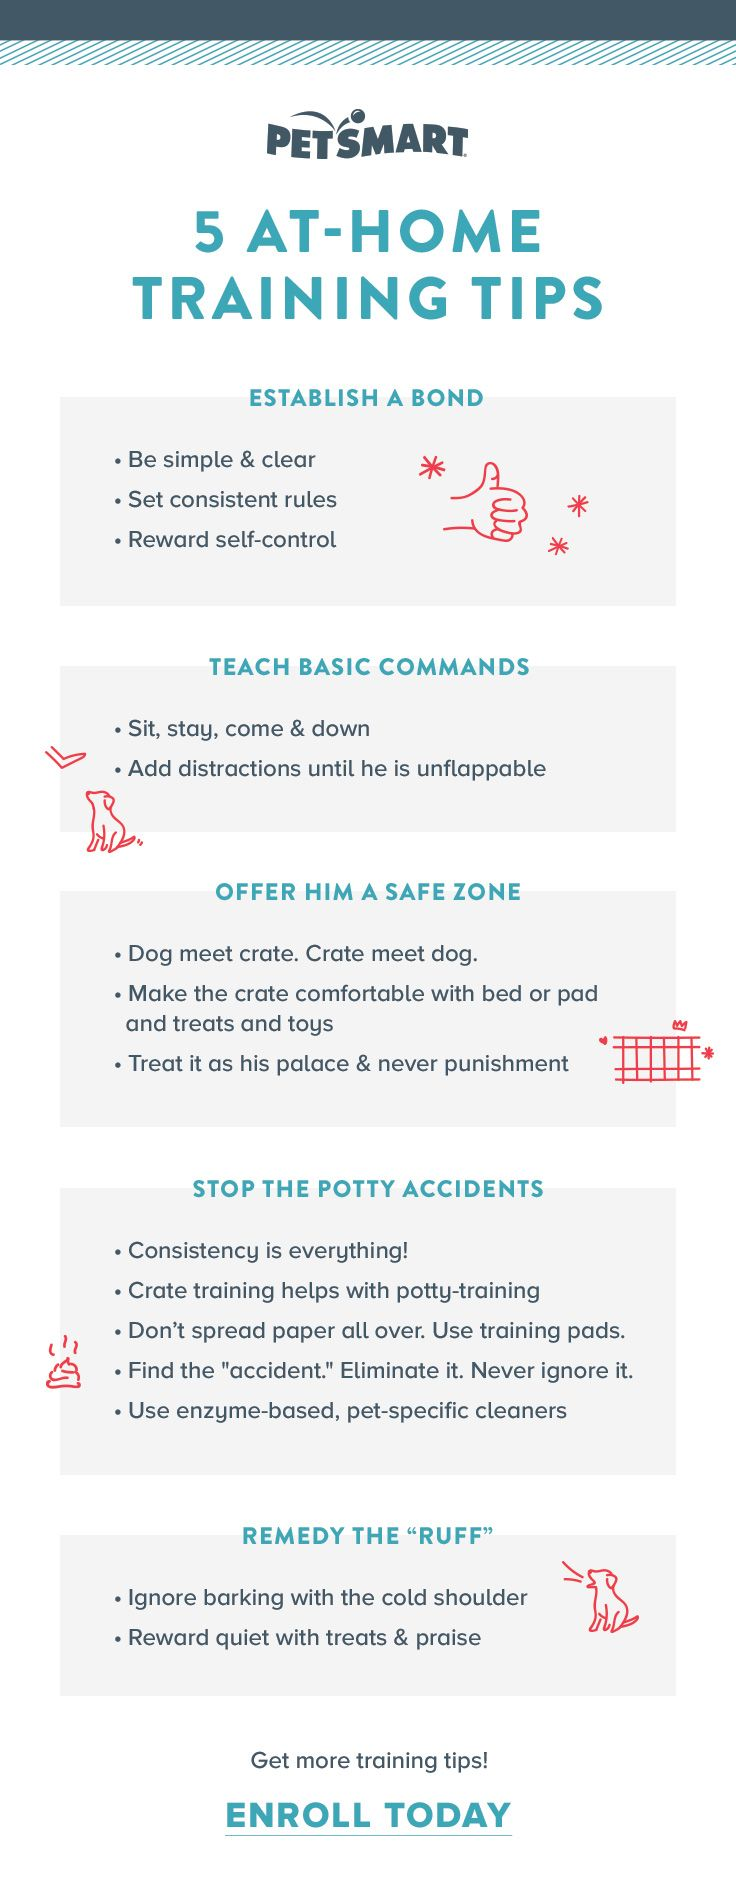 Make puppy-parenting a breeze by mastering these 5 at-home training tips — or leave it to the professionals with PetSmart training.